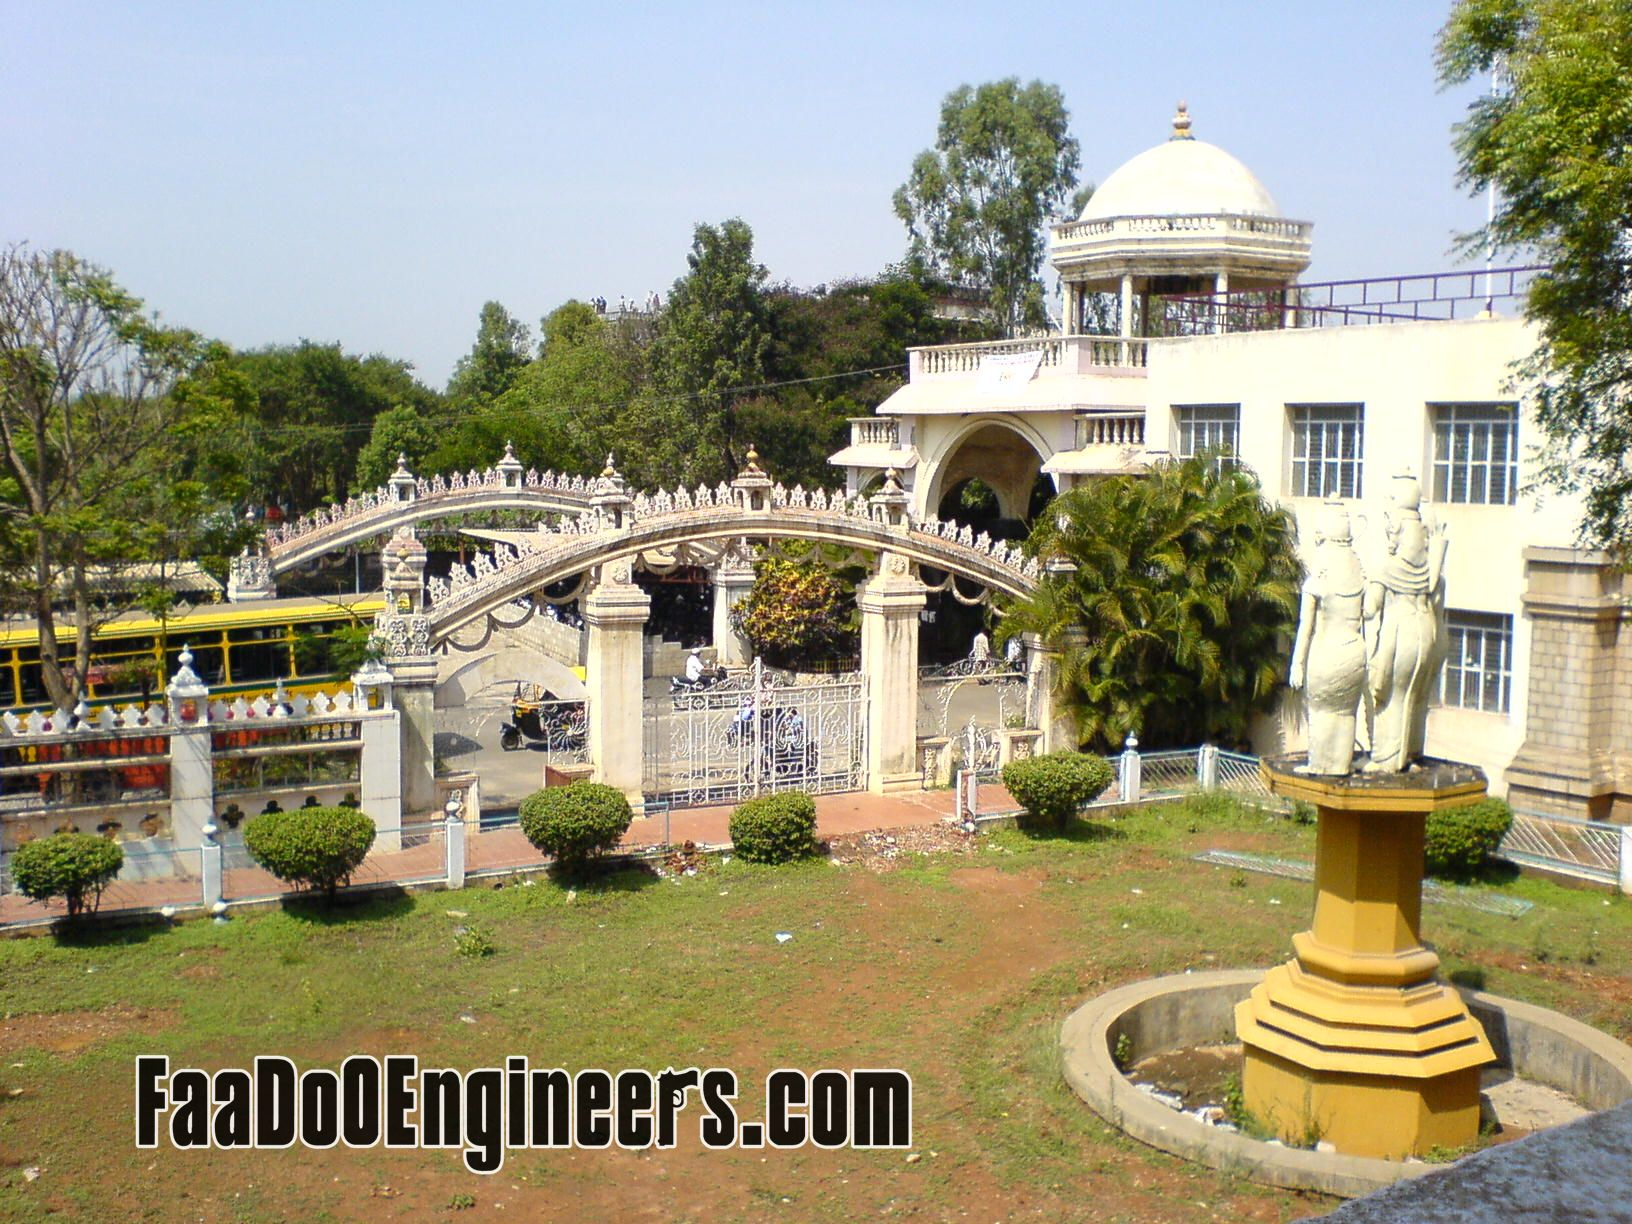 m-s-ramaiah-institute-of-technology-bangalore-campus-photos-001